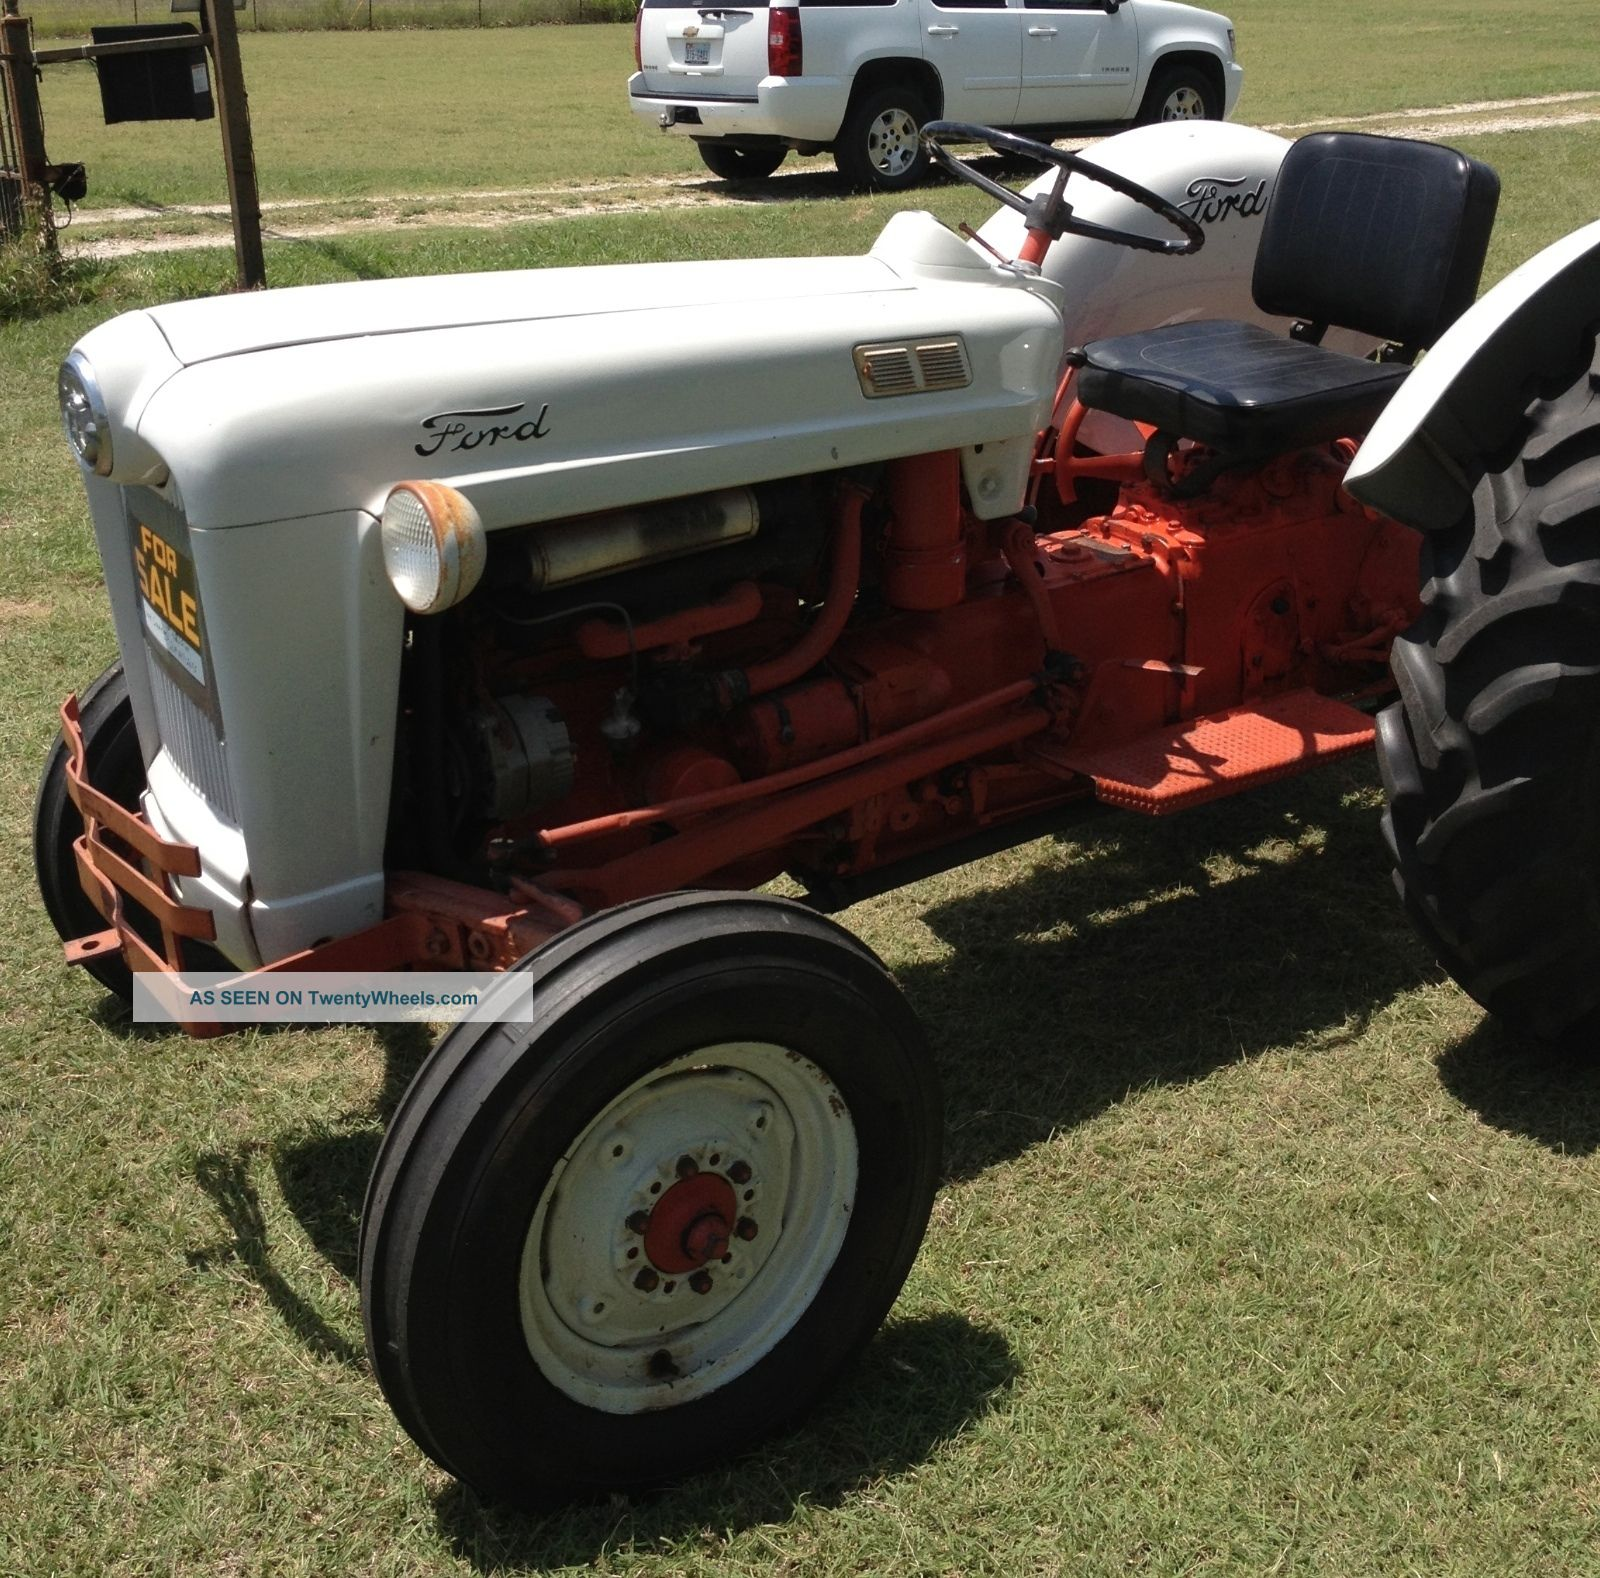 600 Ford Tractor Model : Ford tractor with mower model